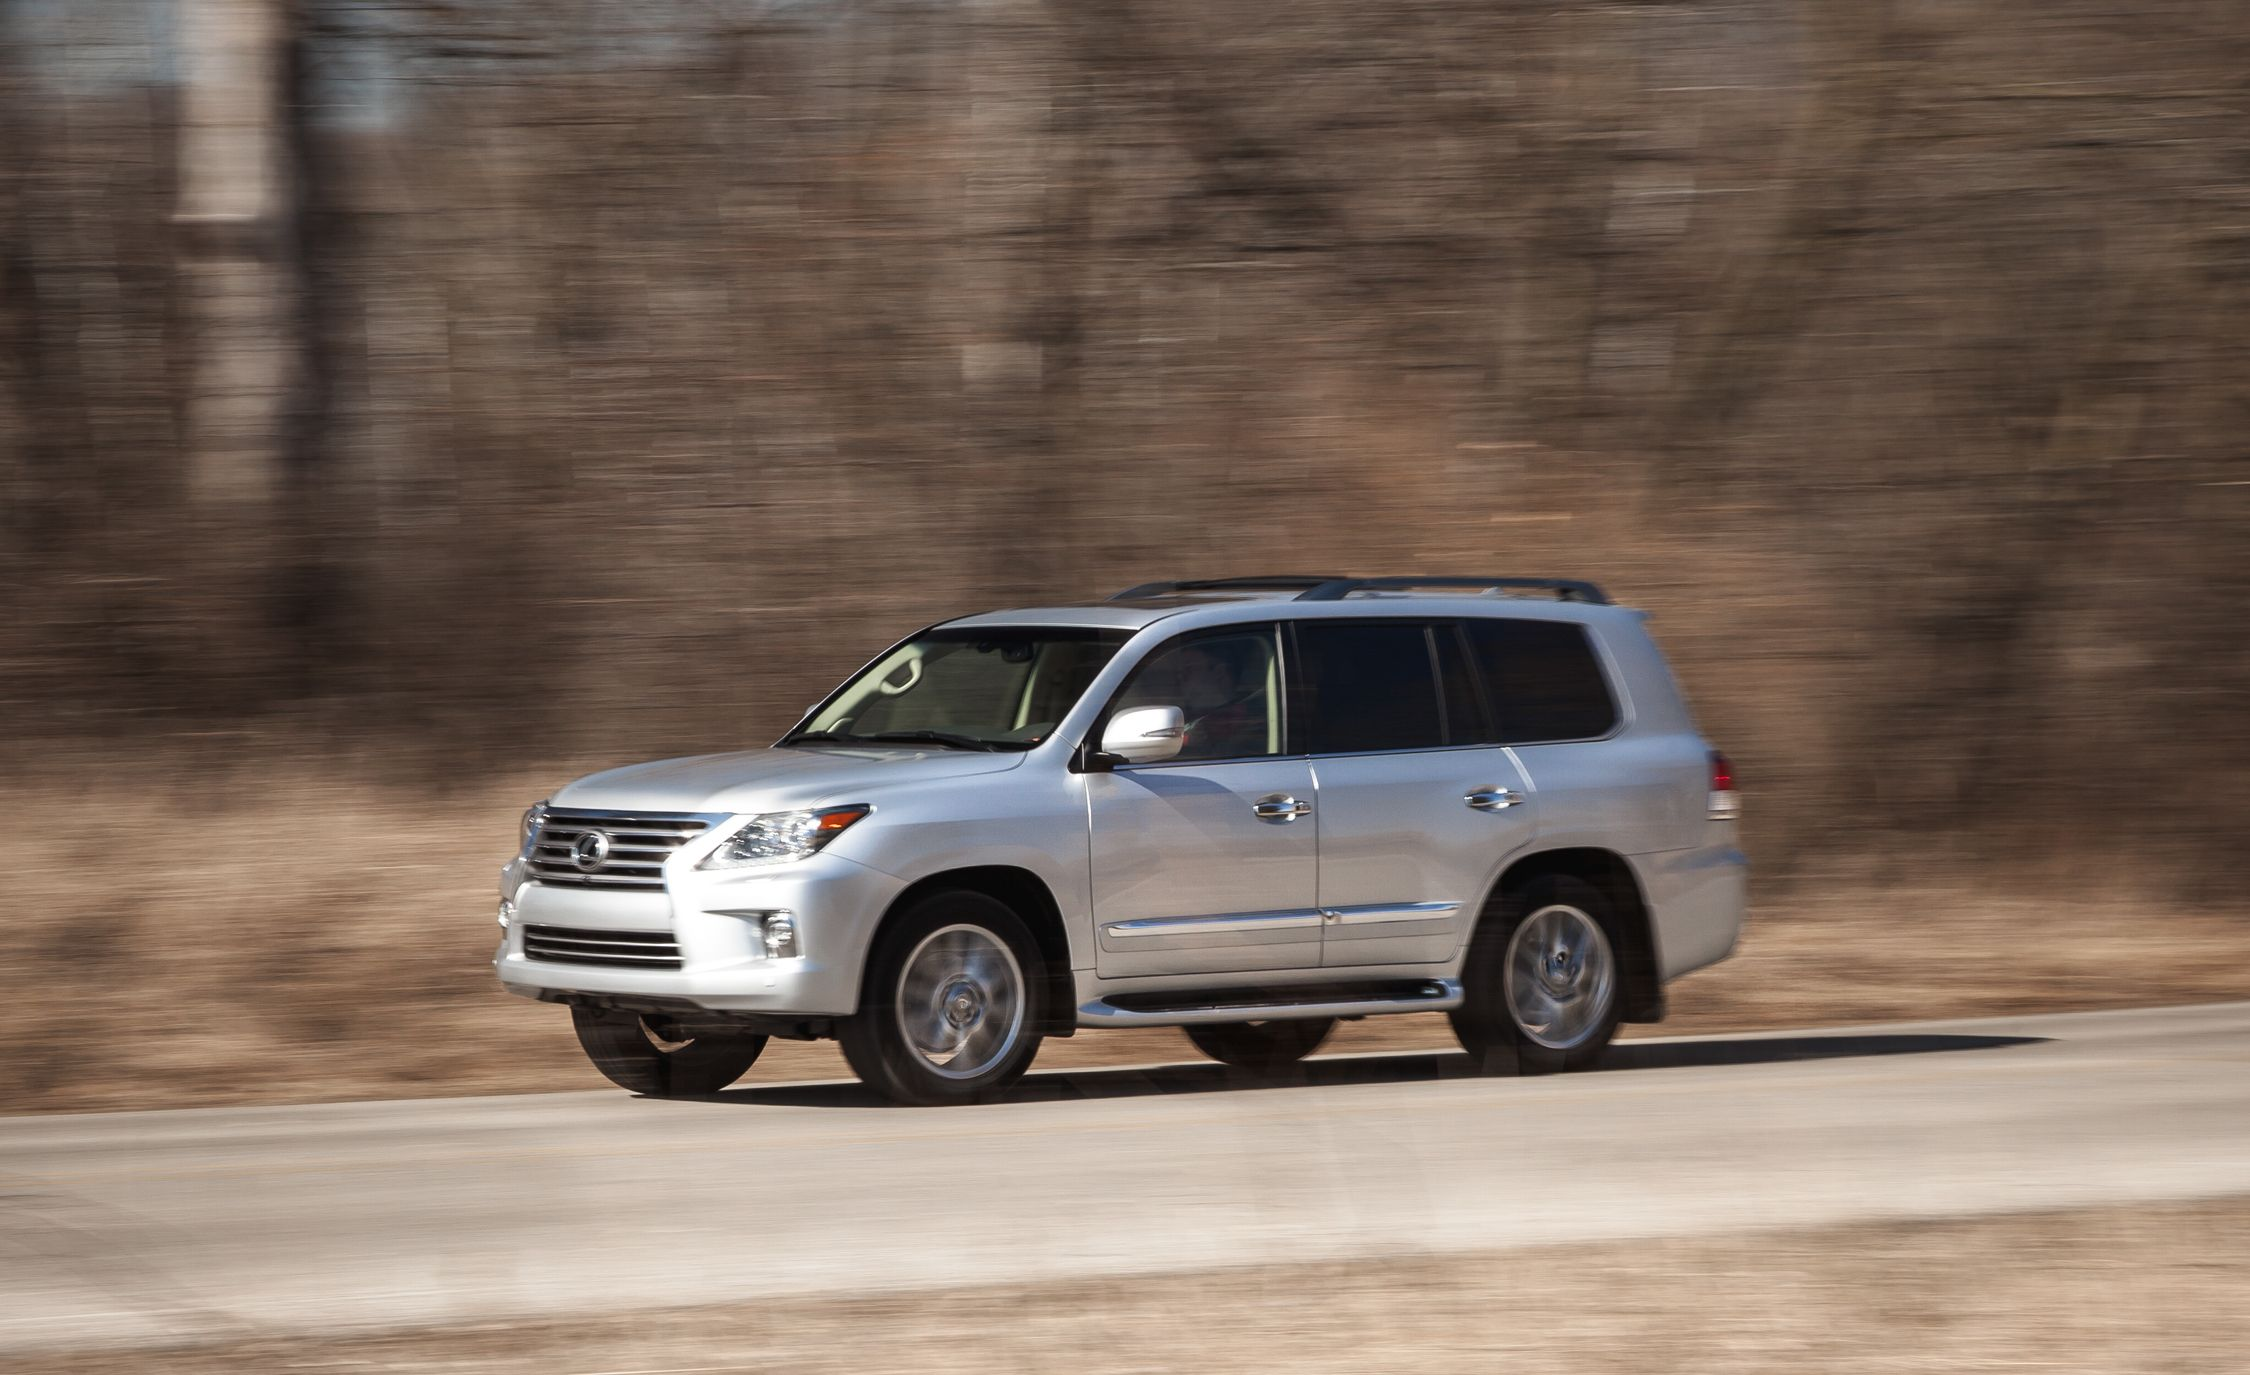 2015 lexus lx570 pictures | photo gallery | car and driver